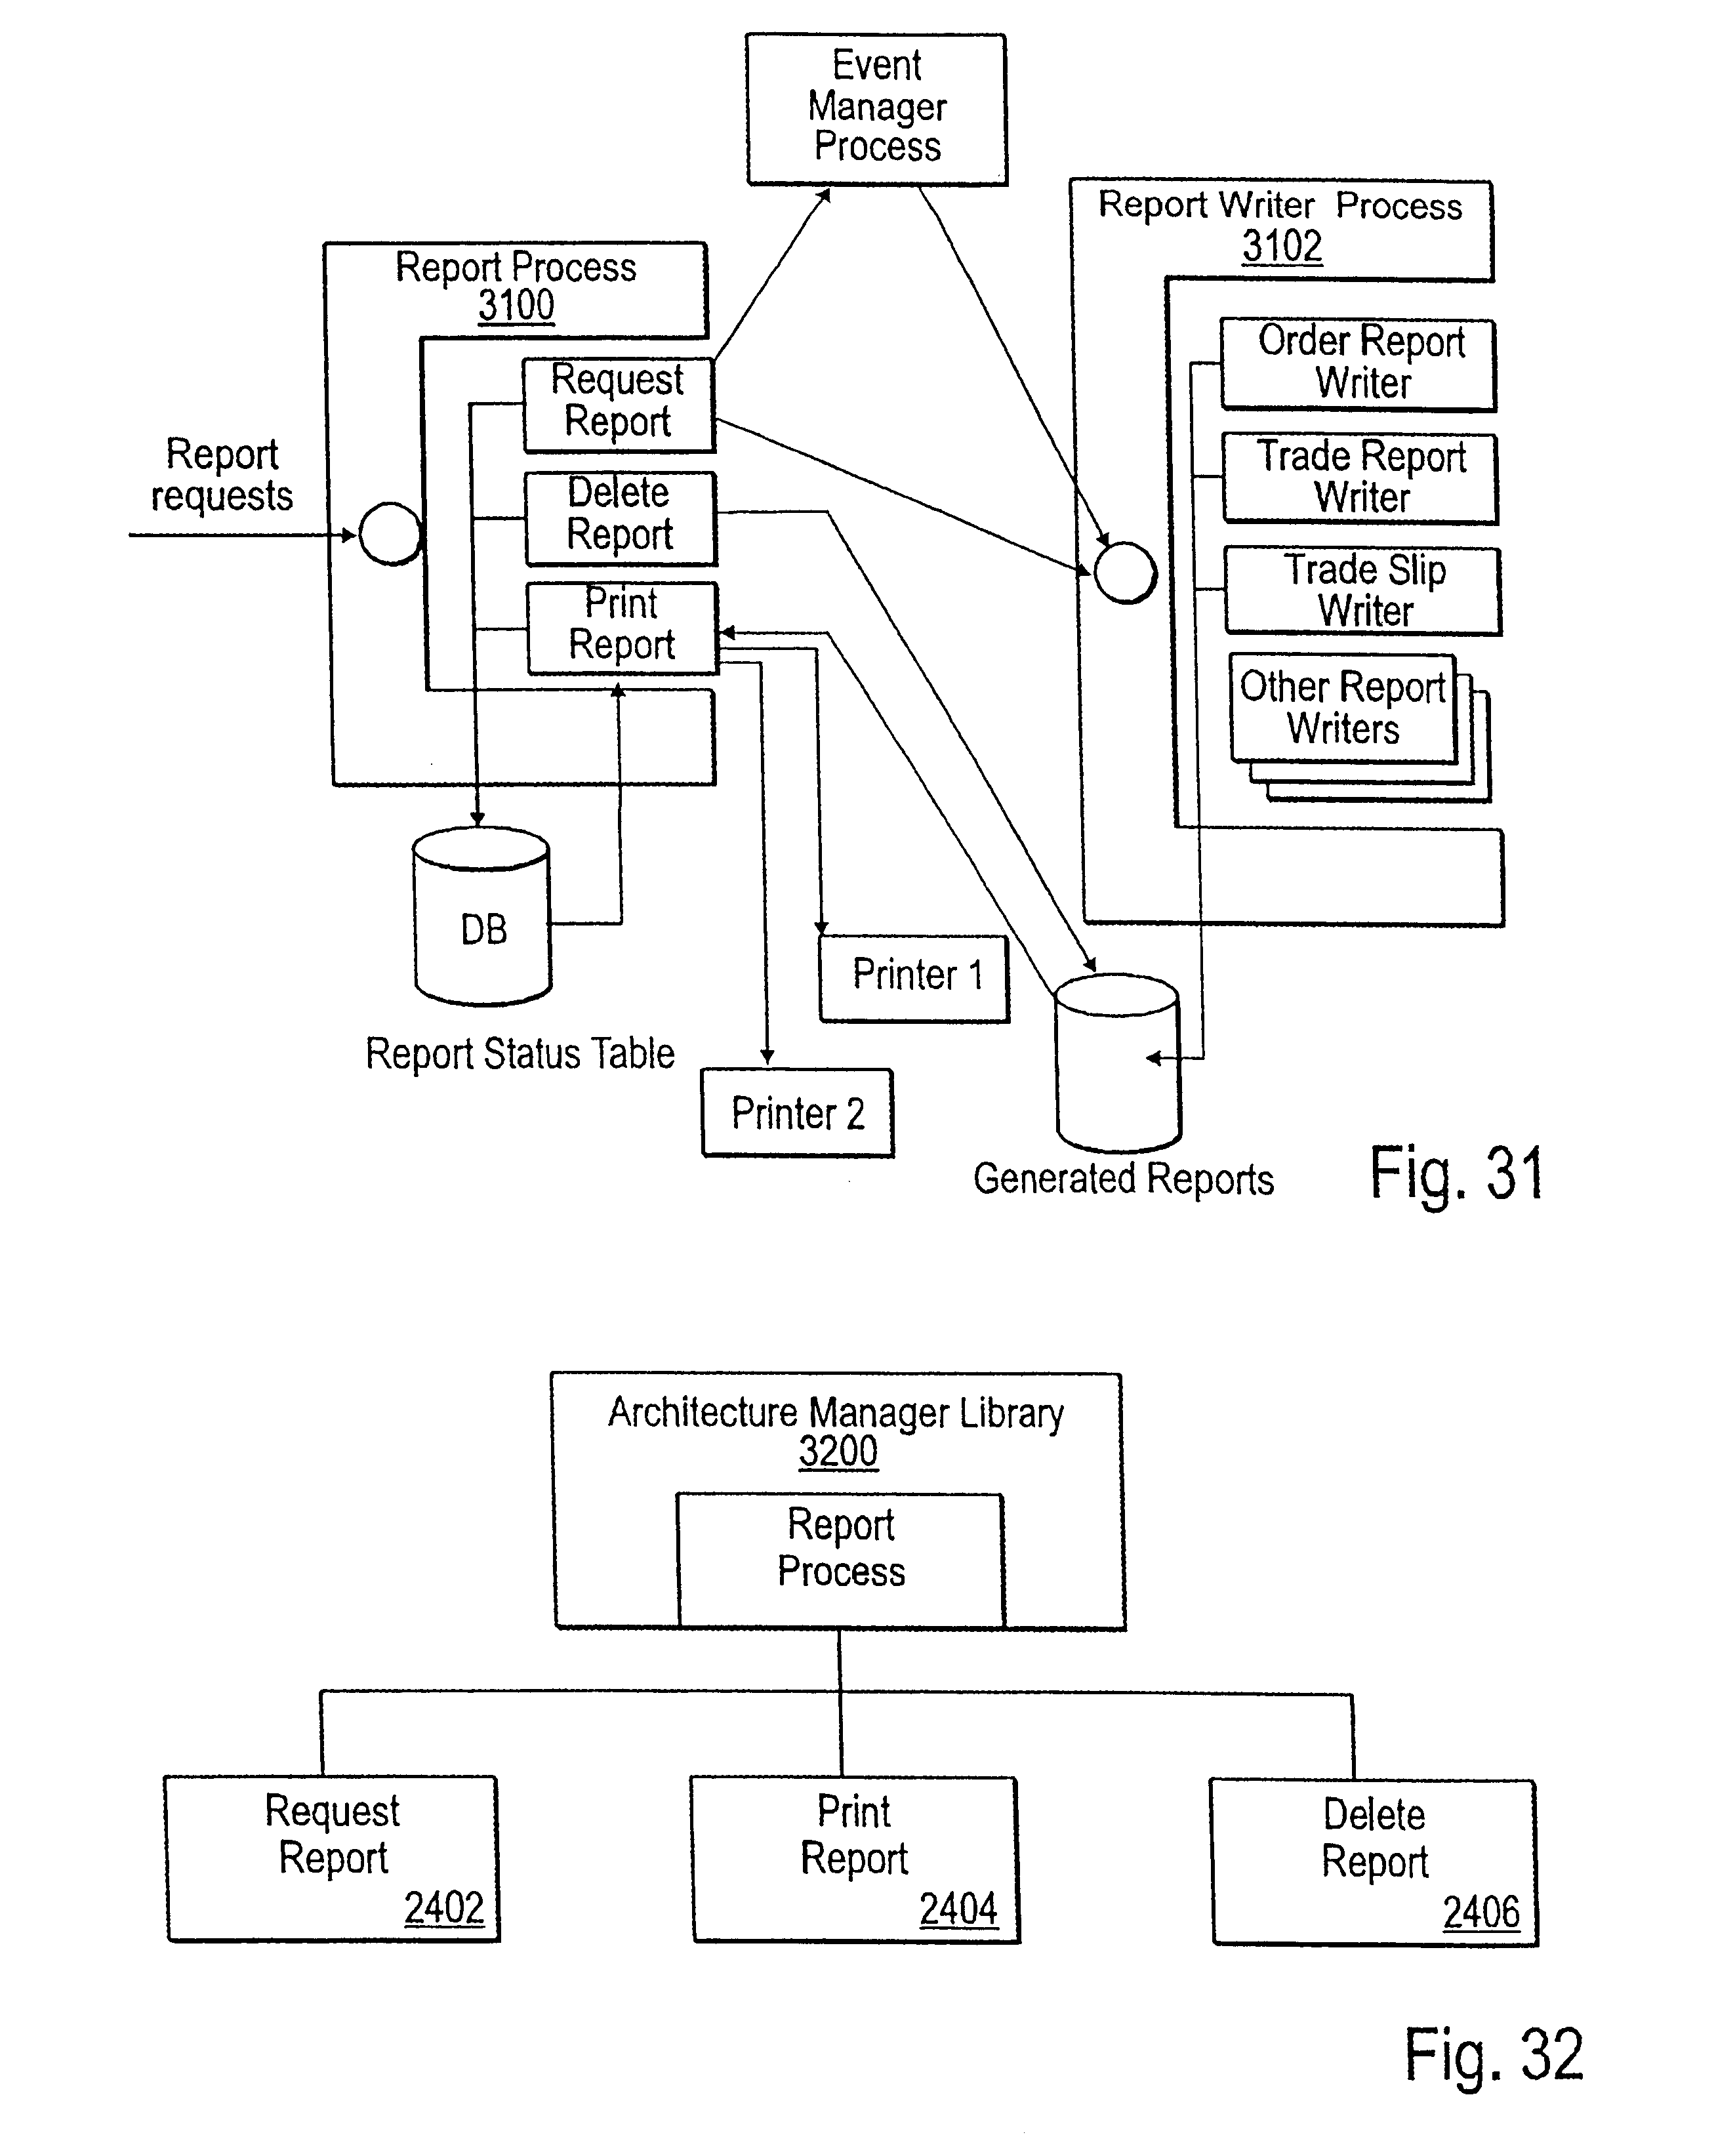 Patent Us 6529948 B1 Fig 42 Block Diagram Simplified Of The Tdm System Architecture Images